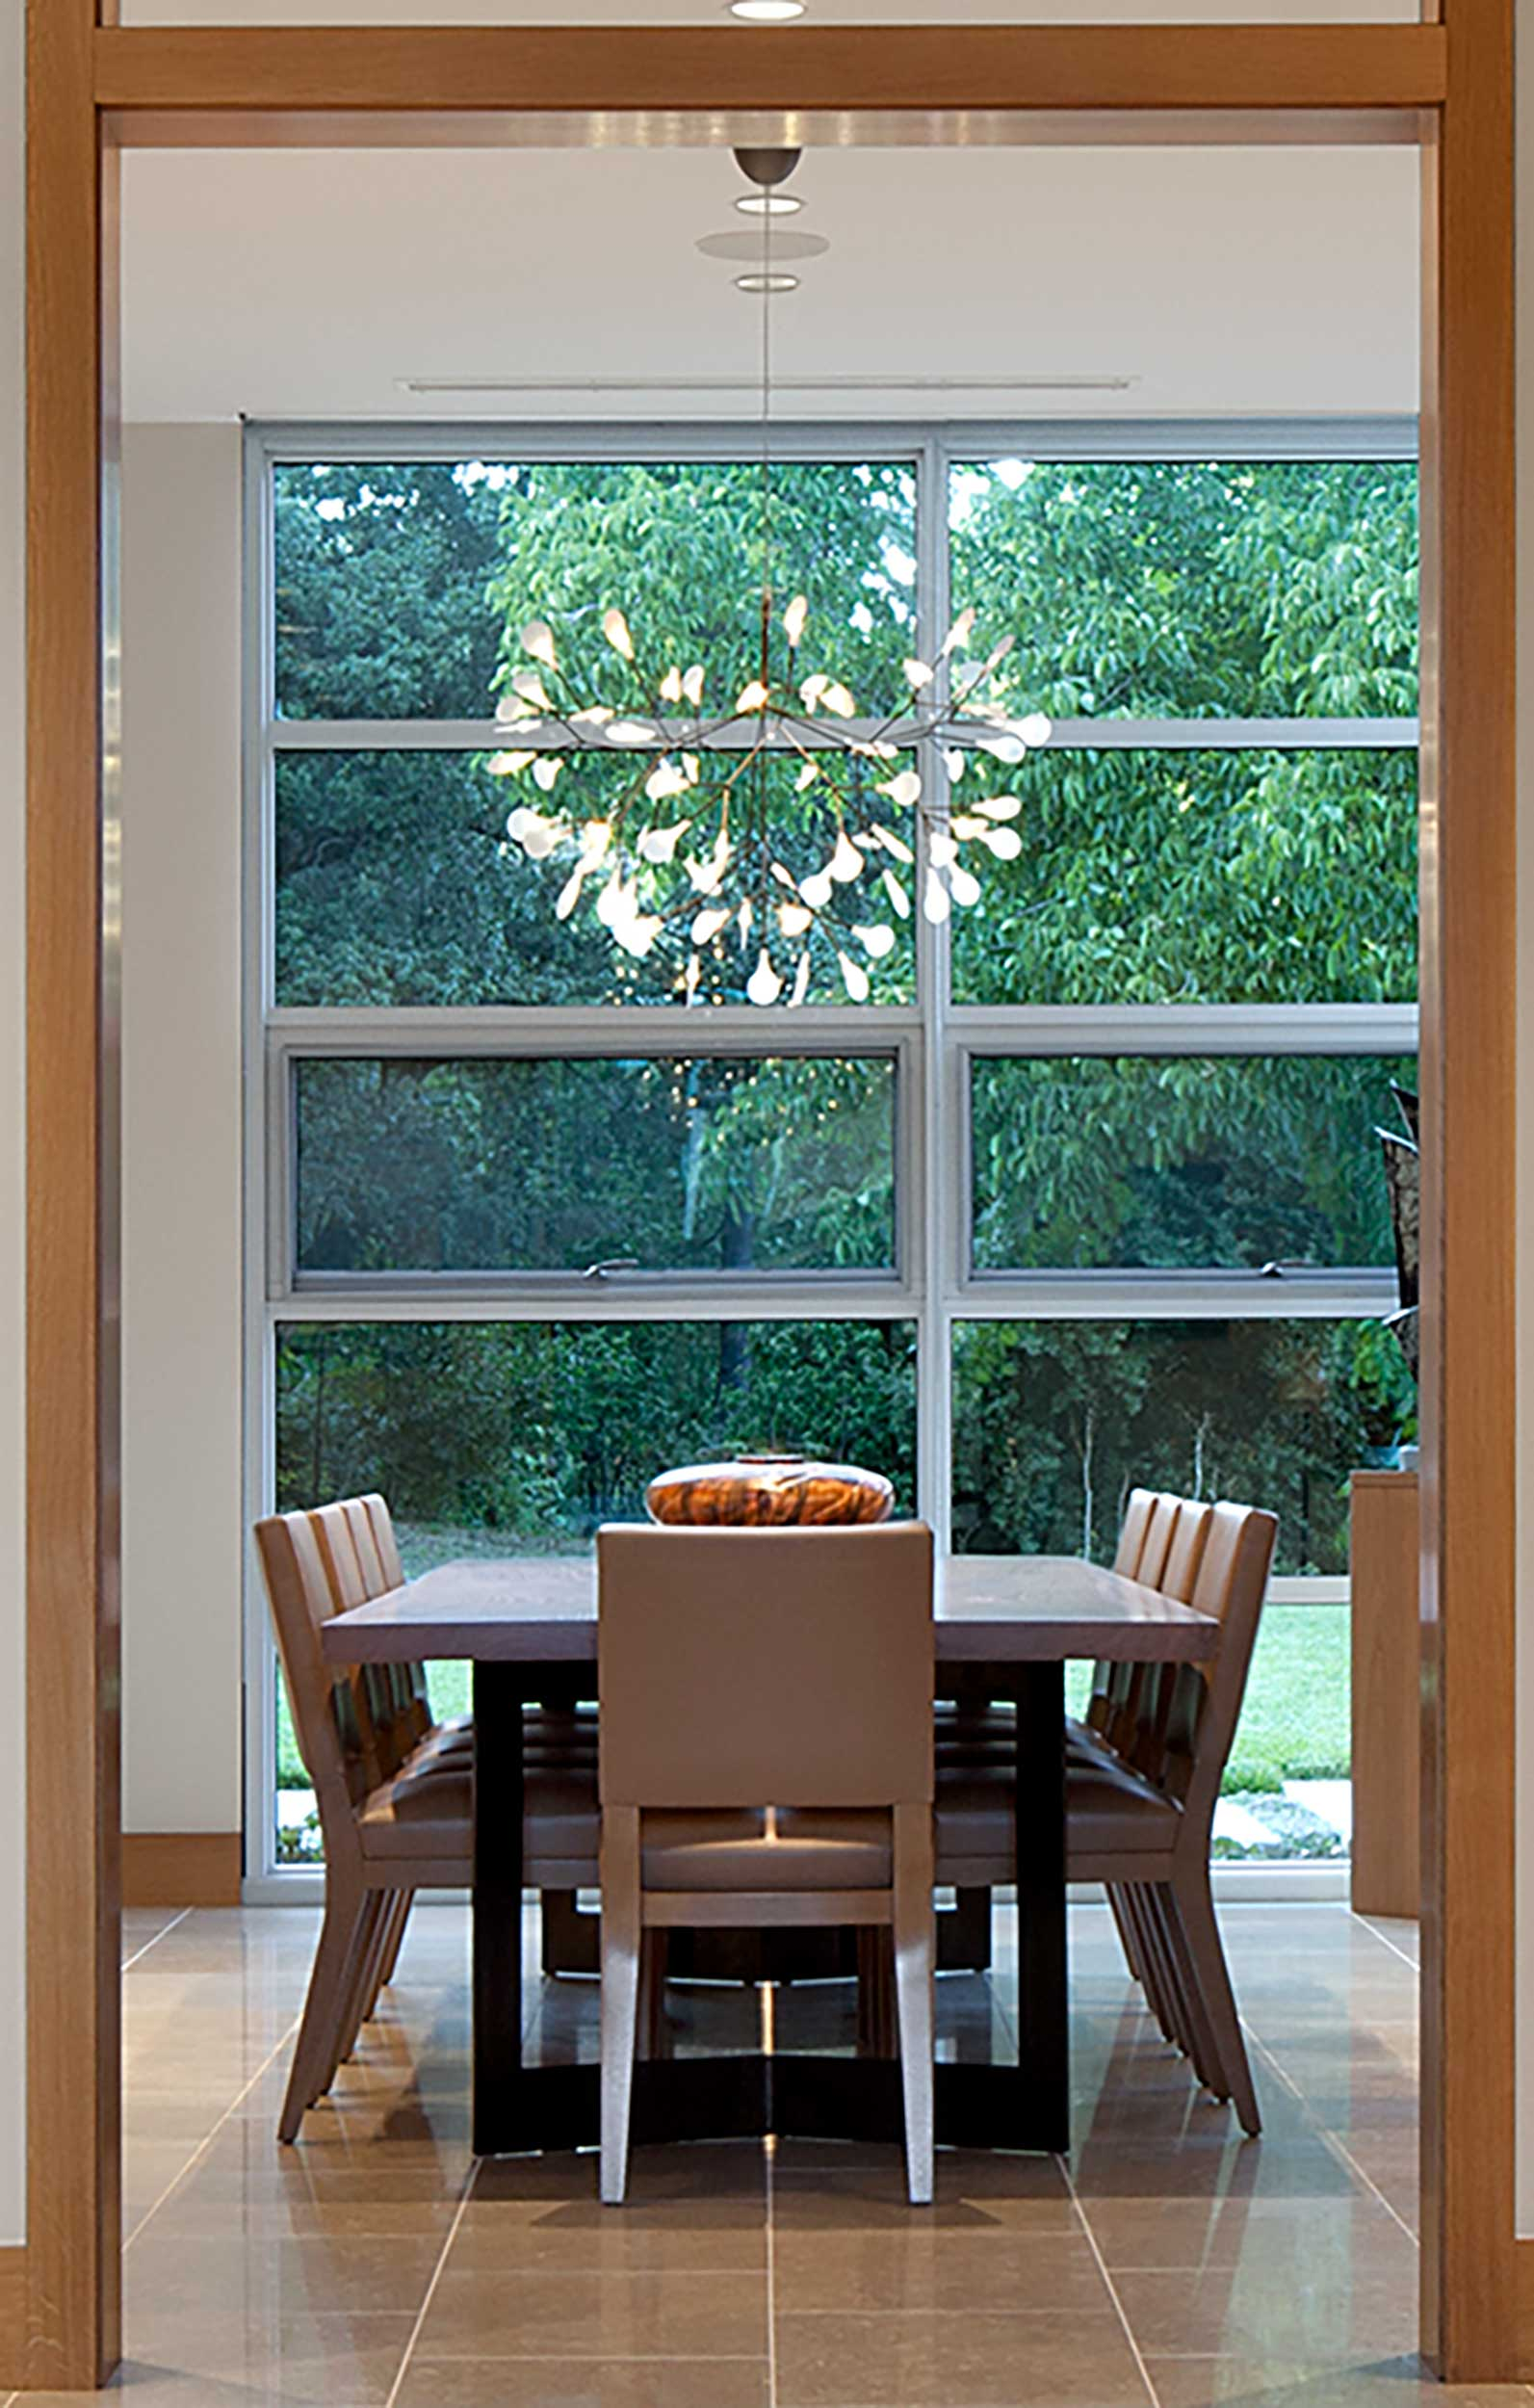 15-Dining-Table.jpg